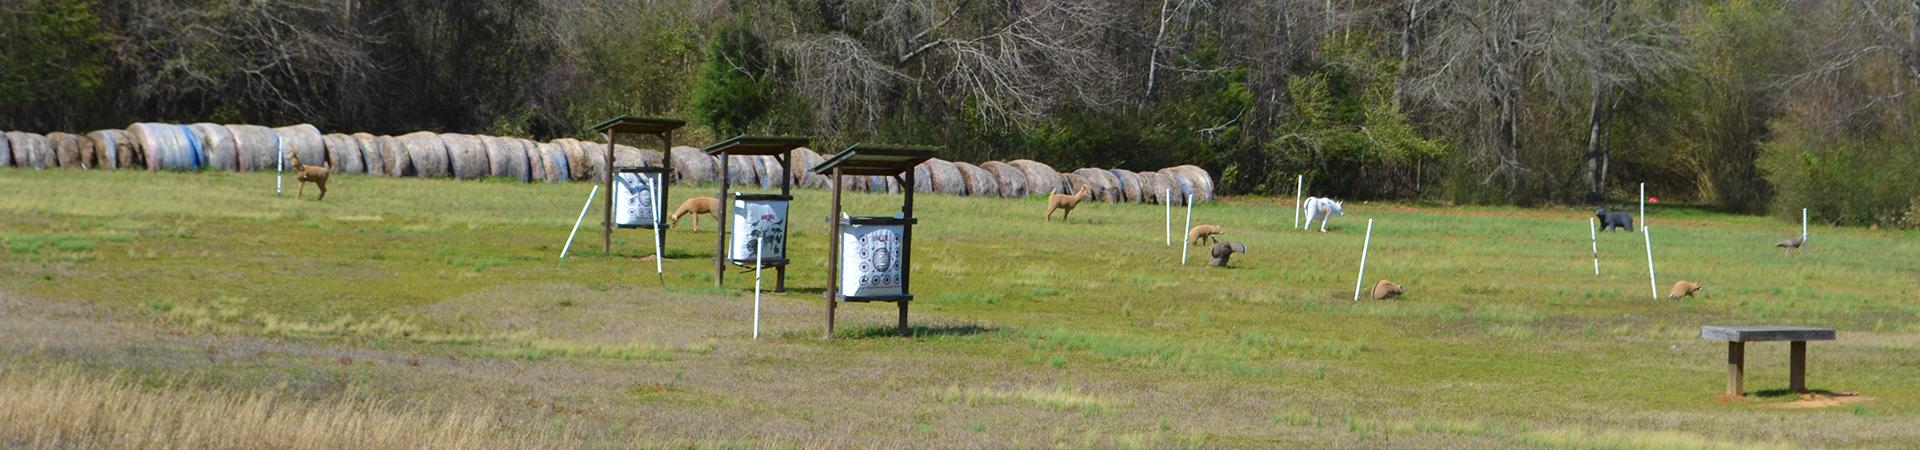 targets at archery range